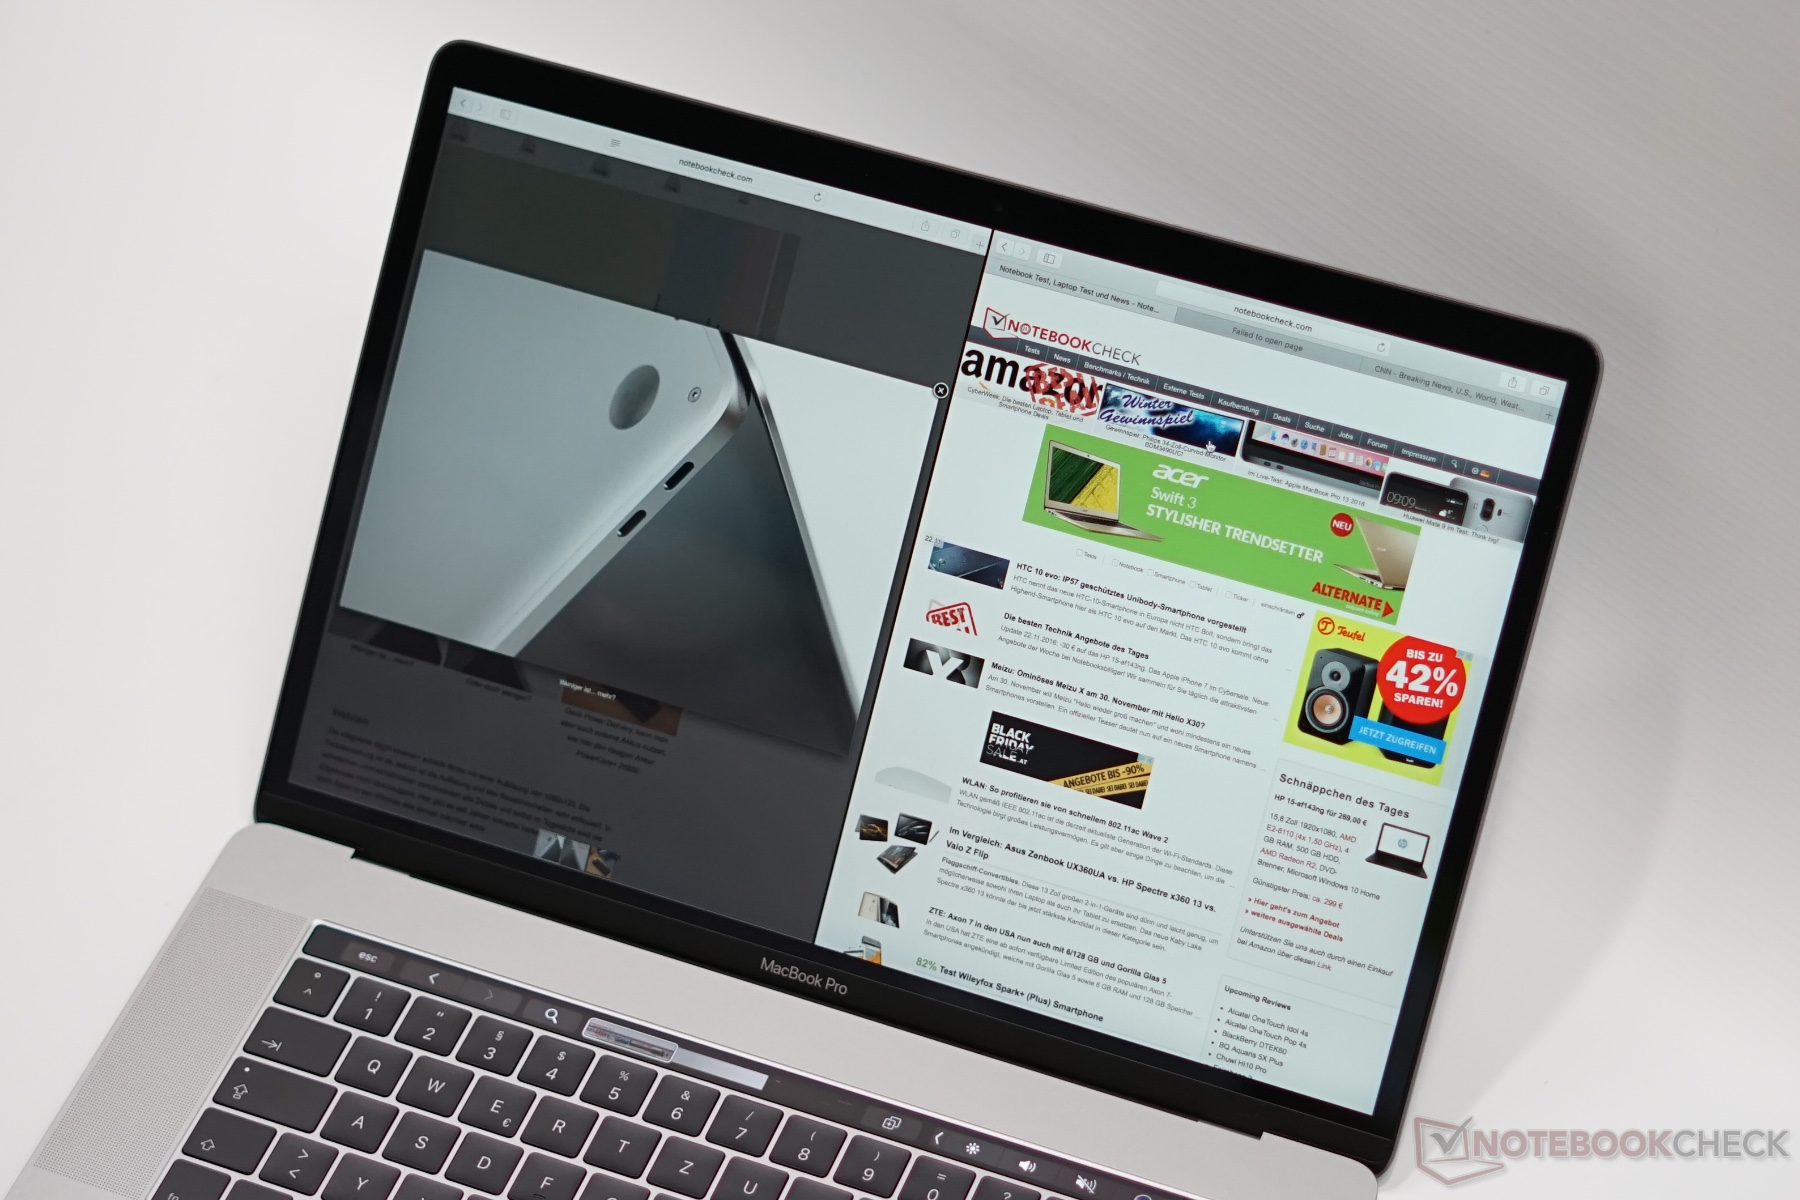 Apple Macbook Pro 15 Late 2016 26 Ghz 450 Notebook Review Retina Mlw82 15inch Touchbar Core I7 16gb 512gb Silver Full Resolution